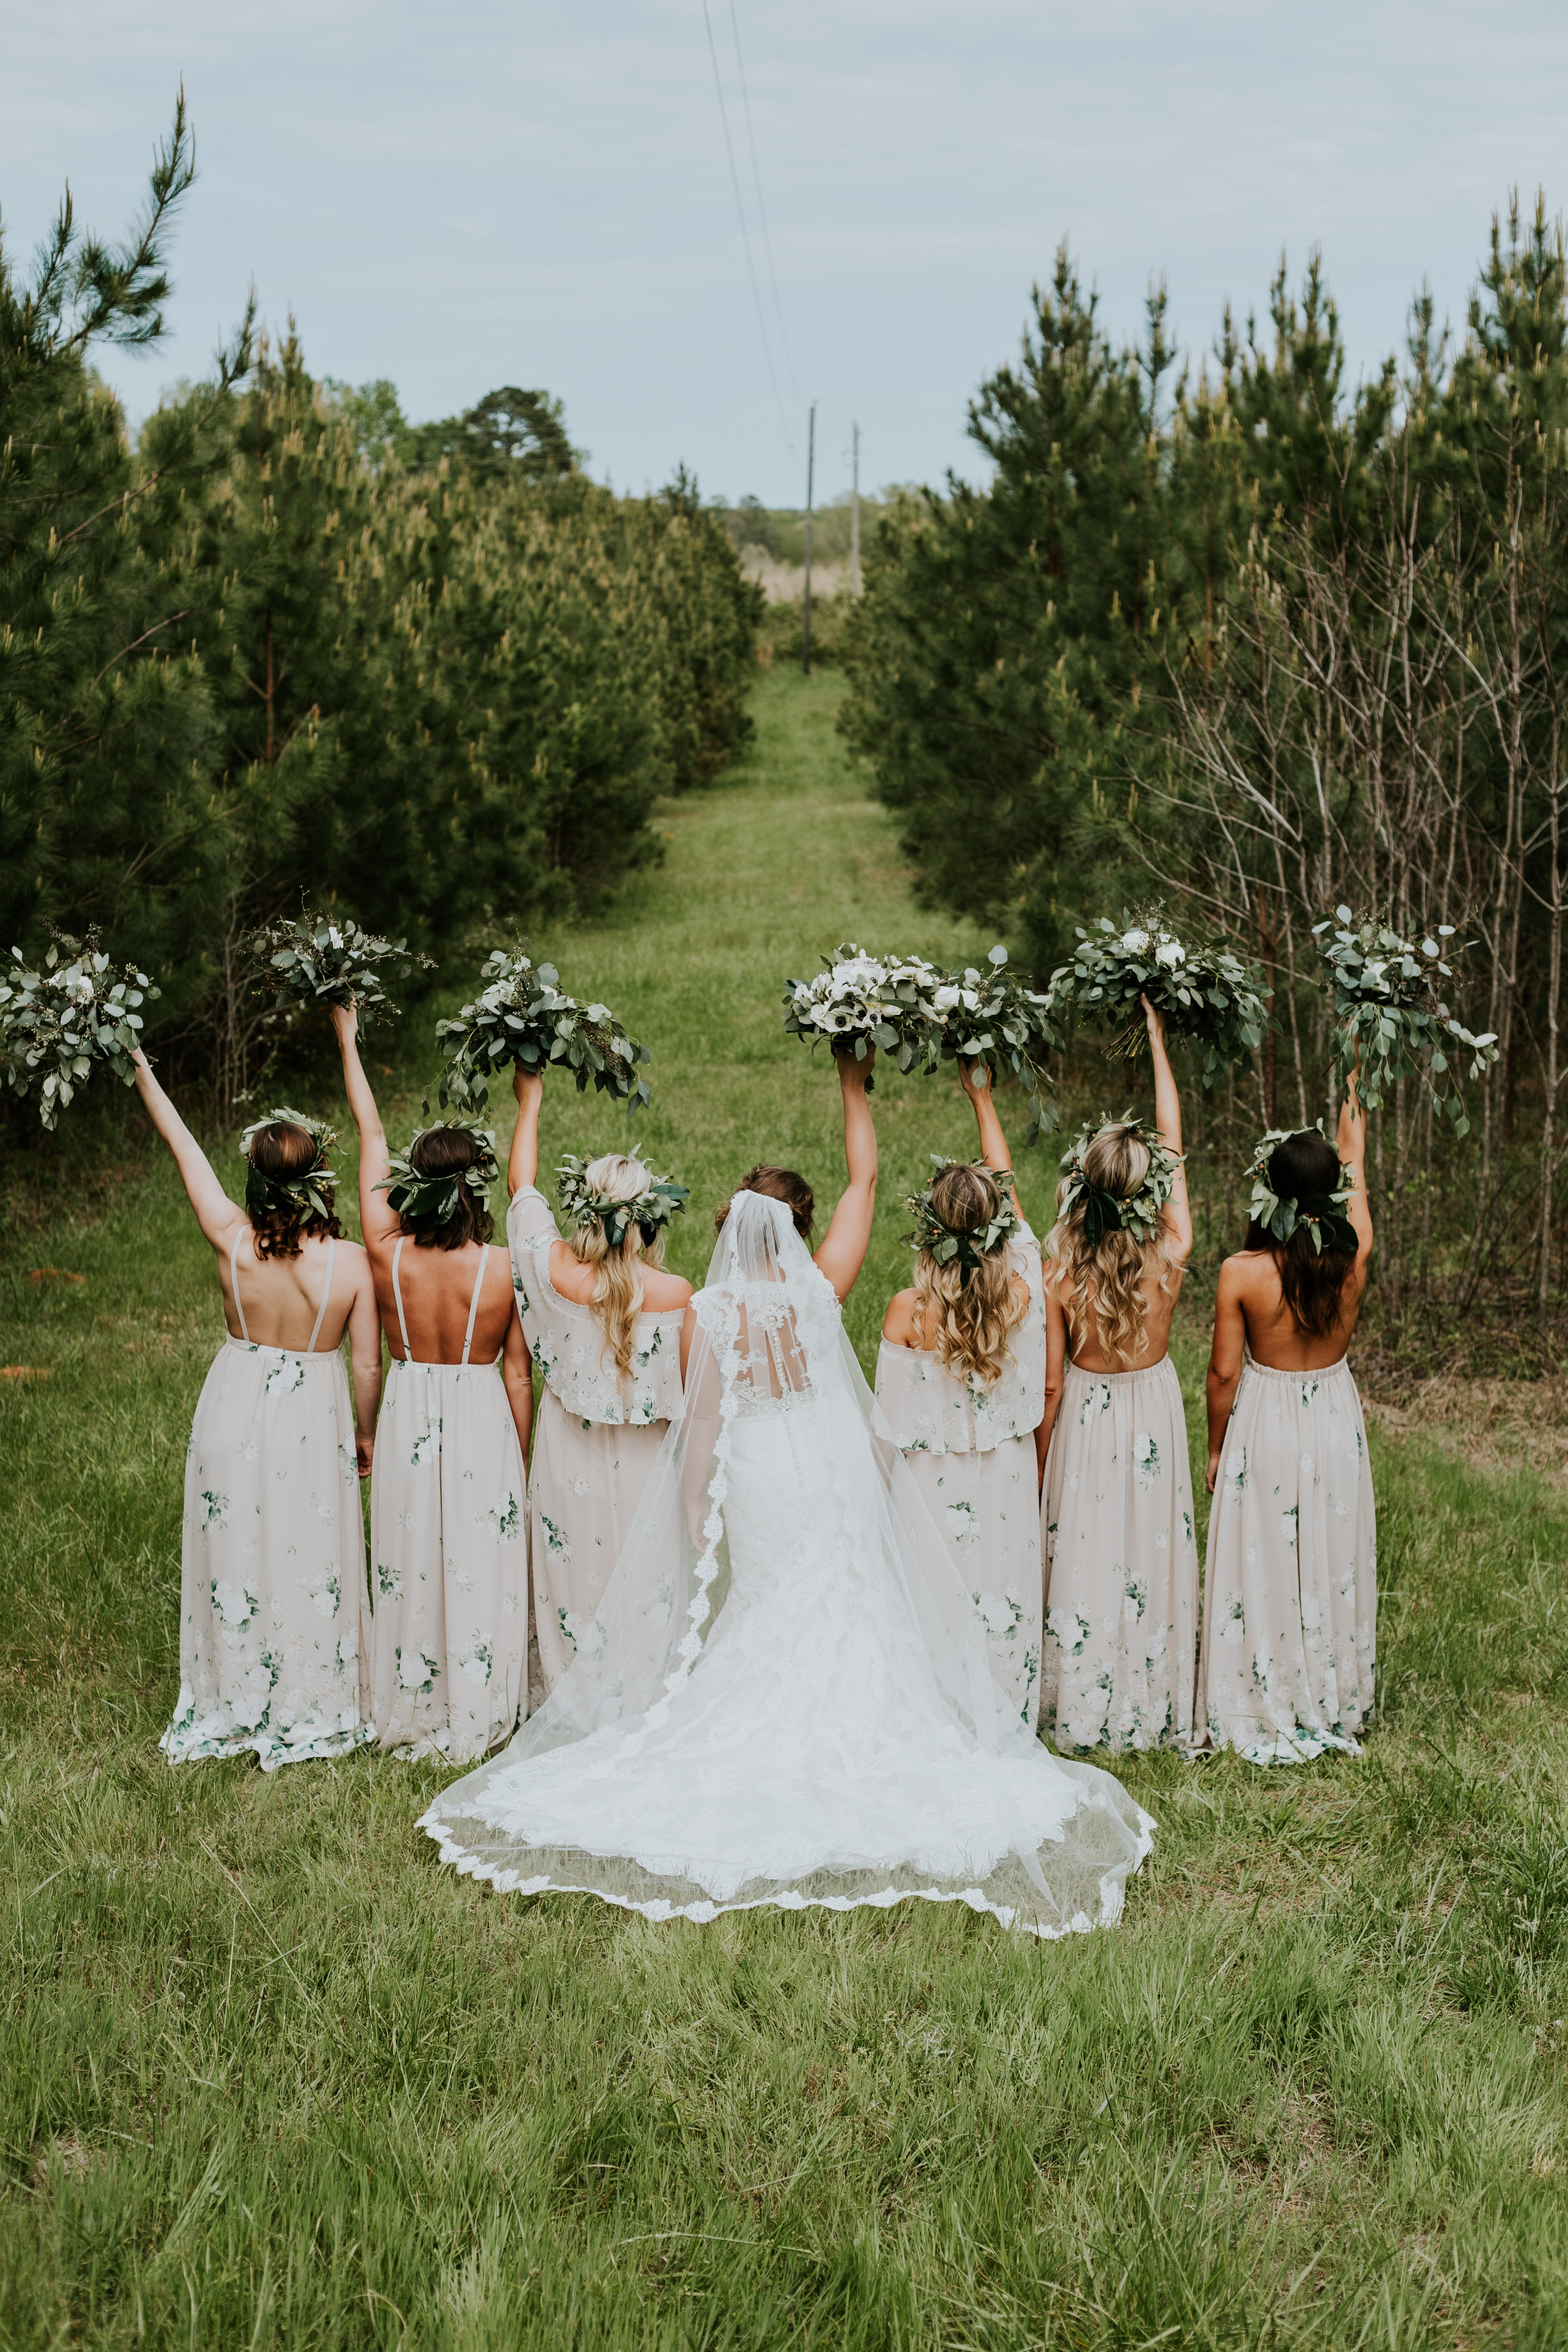 group of women holding high floral bouquets during daytime